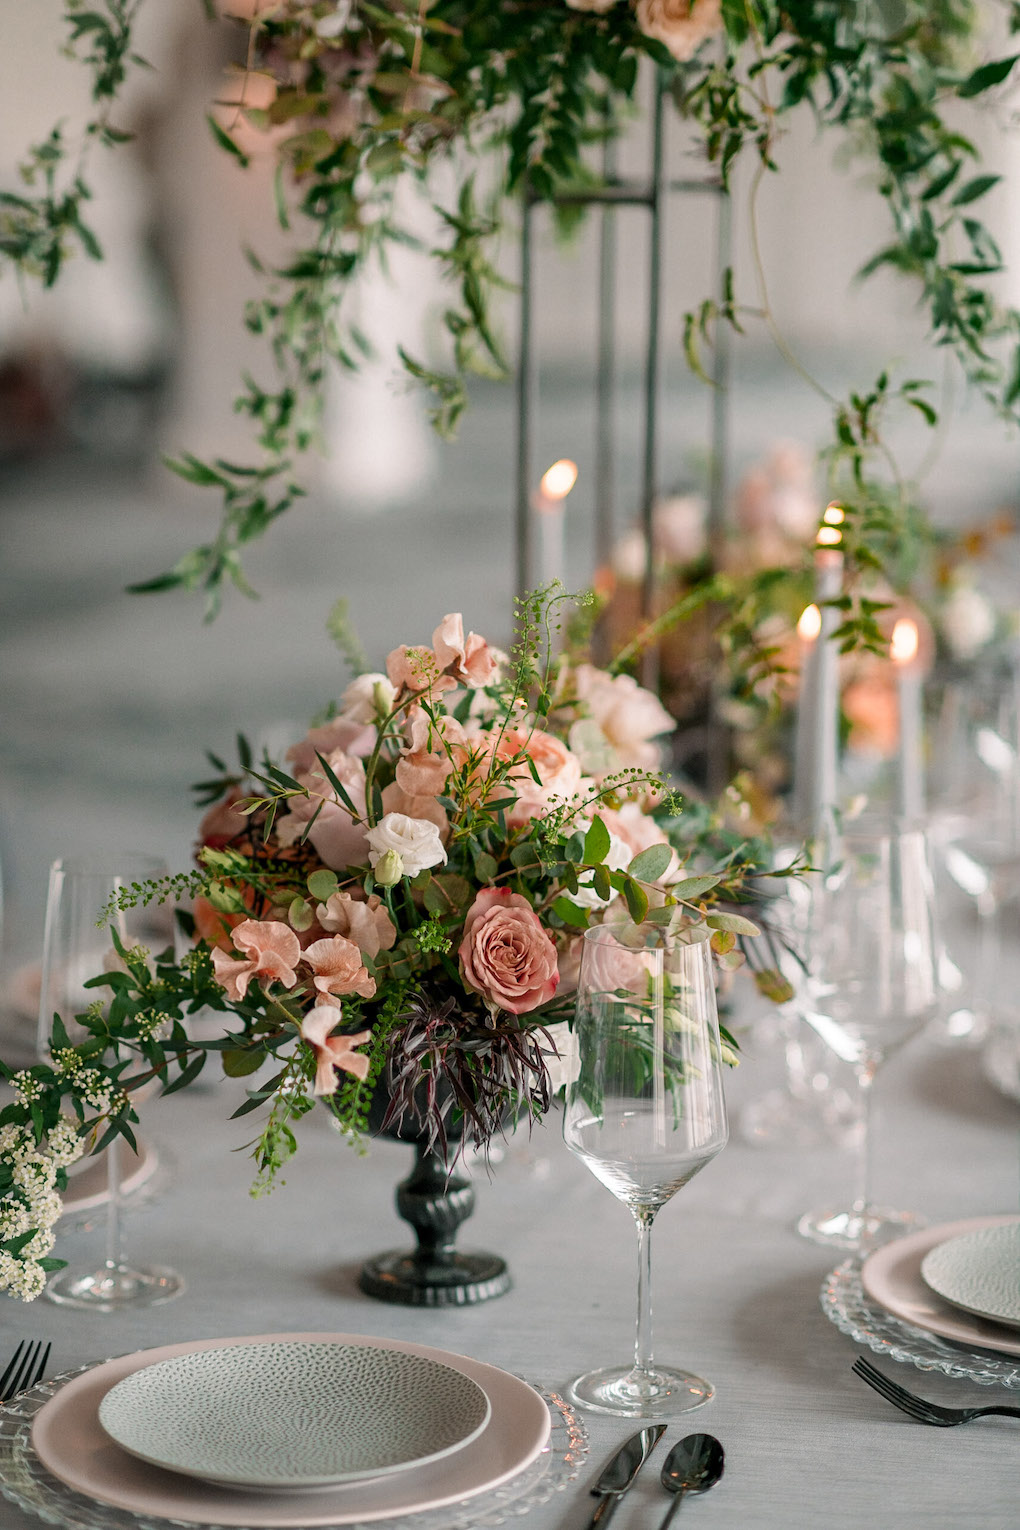 Modern Table Setting: Soft and Subtle Palettes of Spring Blossoms | Editorial Shoot at The Renaissance Pittsburgh by Exhale Events. See more inspiration at exhale-events.com!